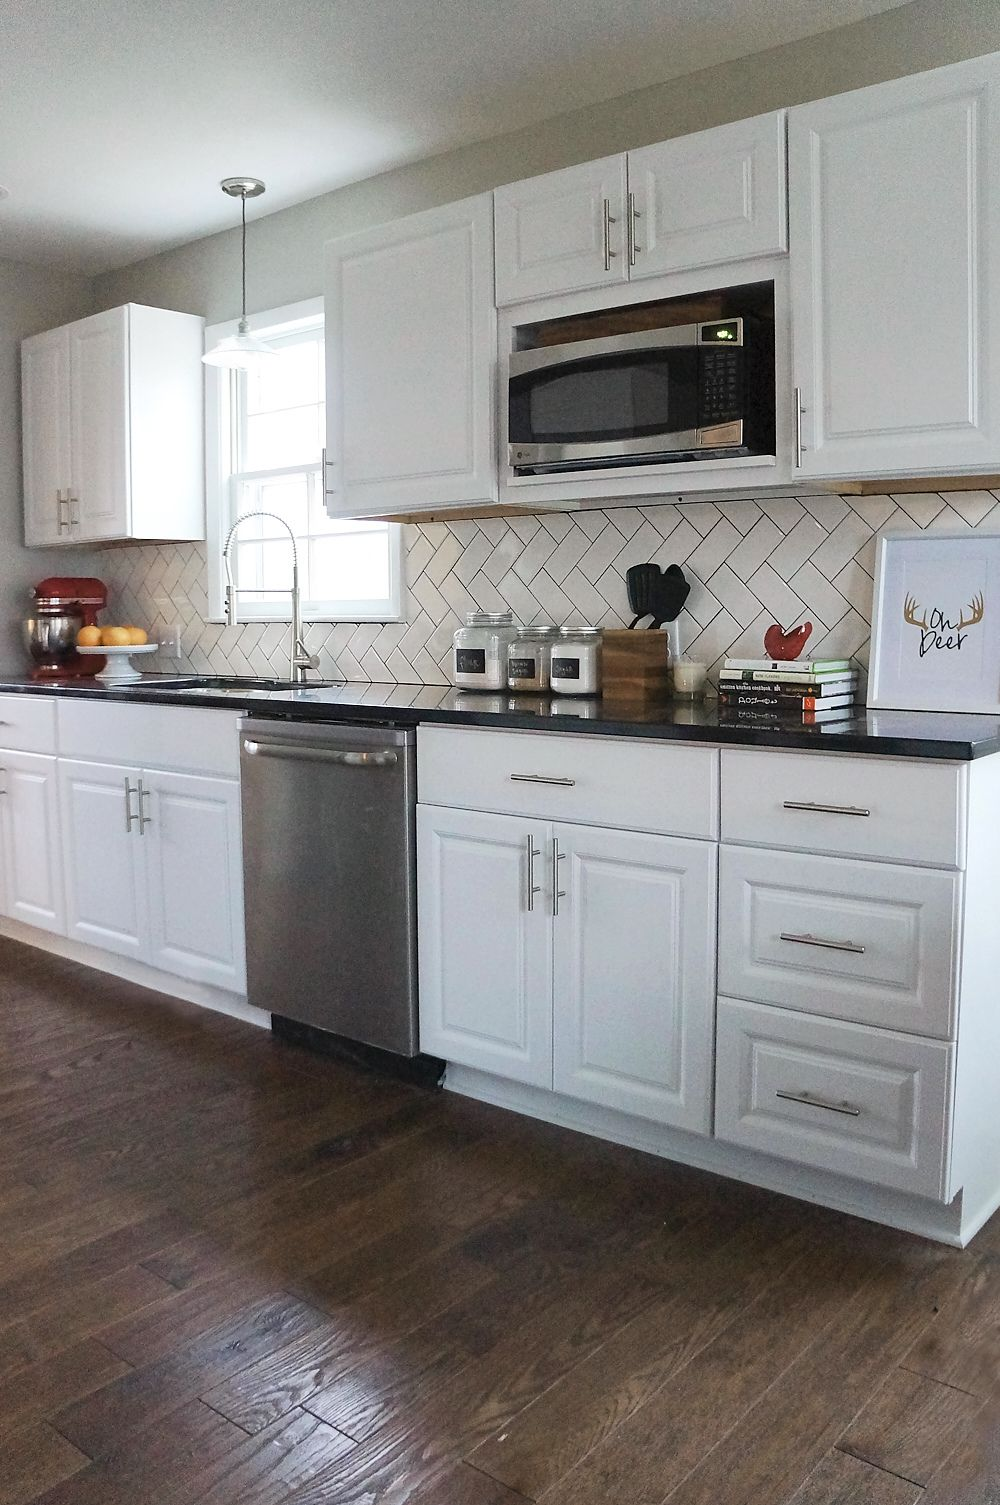 Before And After: A 1960s Kitchen Makeover